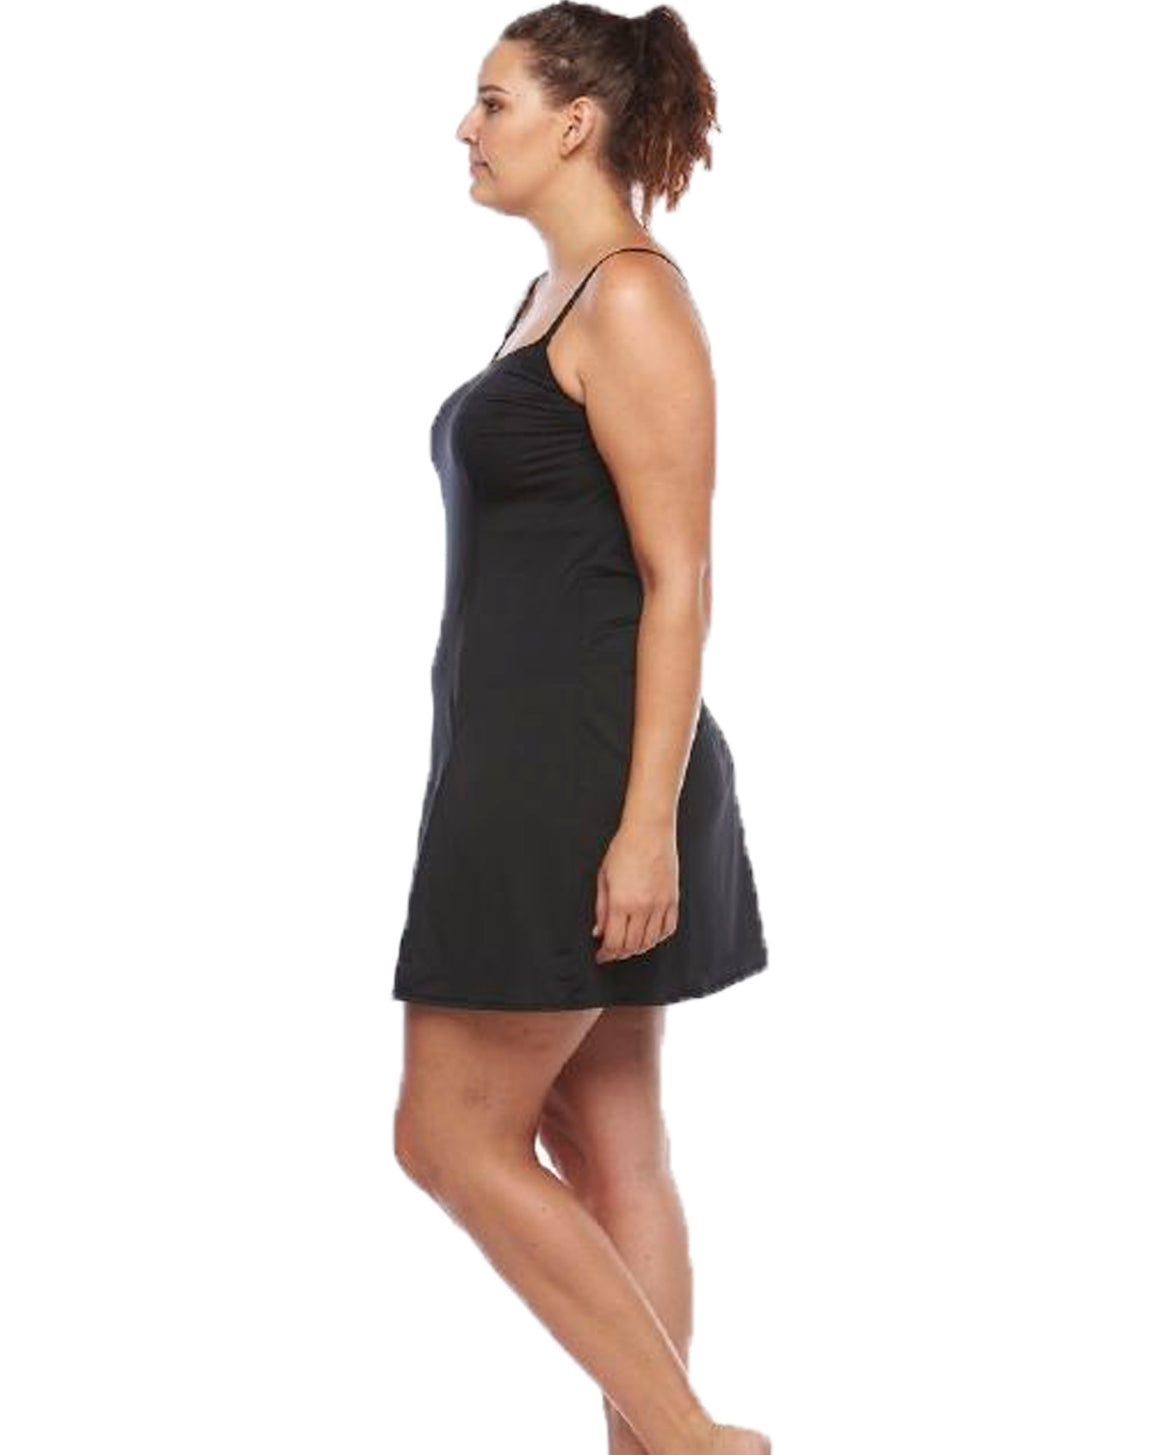 Midi Slip or Short Nightie | Plus Size